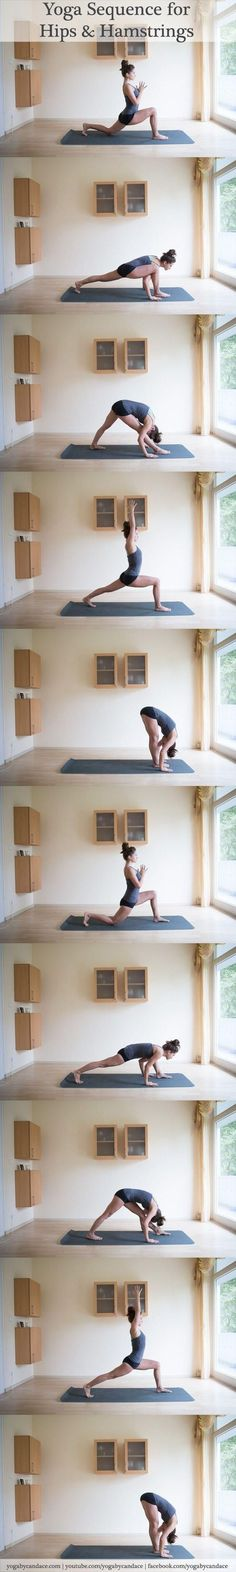 Yoga sequence for hips and hamstrings